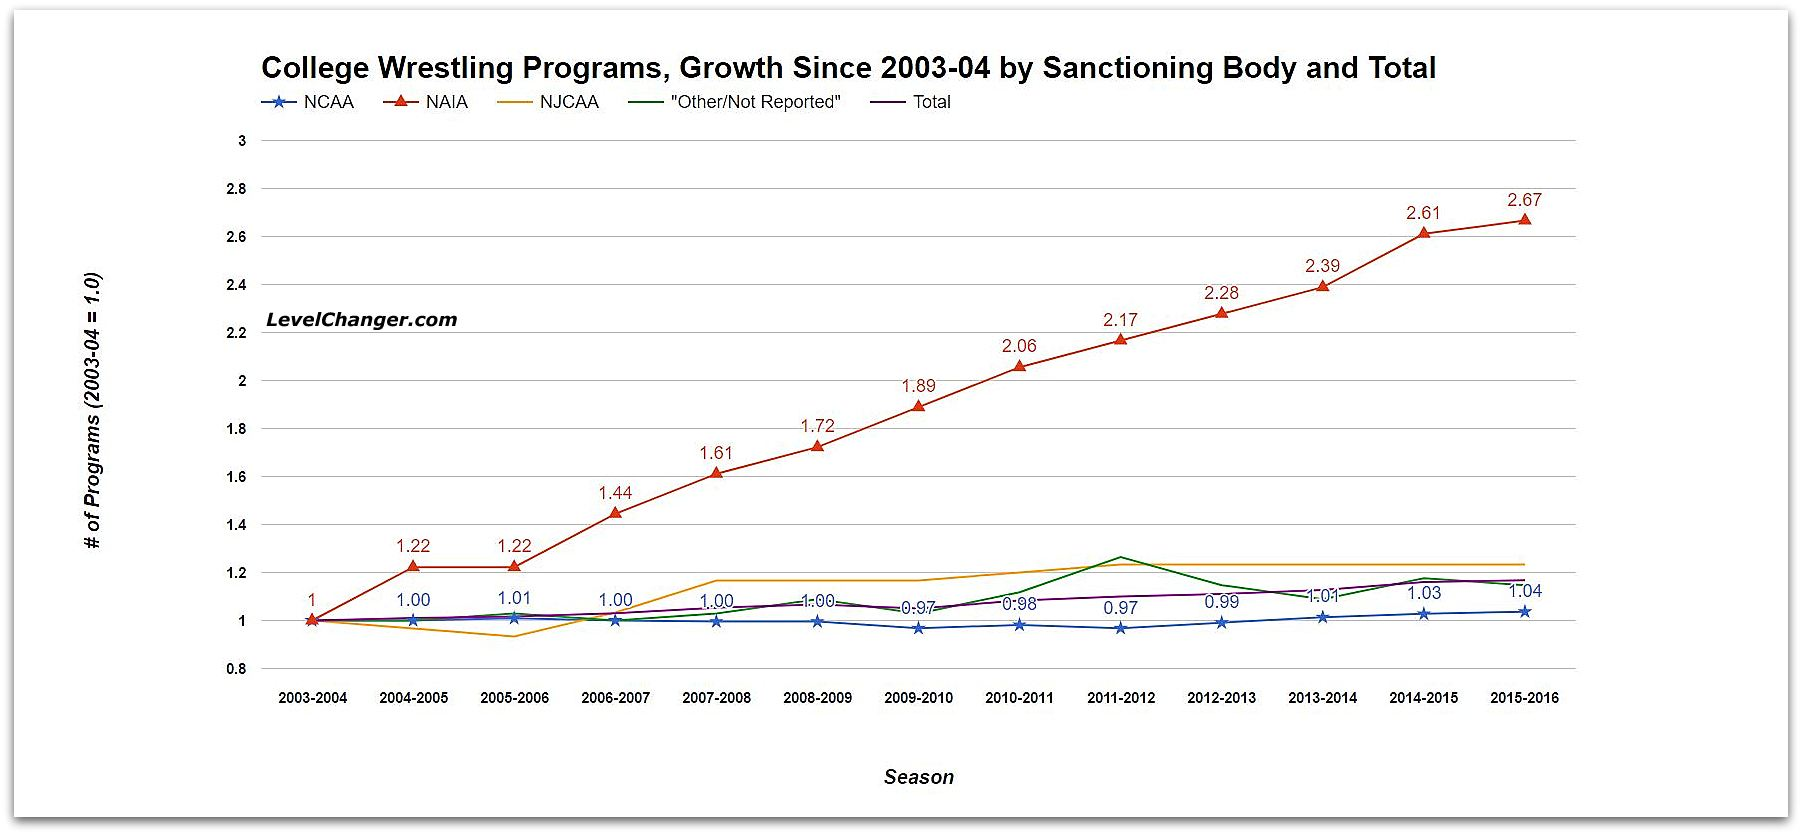 College Wrestling Programs, Contributions to Growth by Sanctioning Body Source: US Dept. of Education Tap or click to enlarge